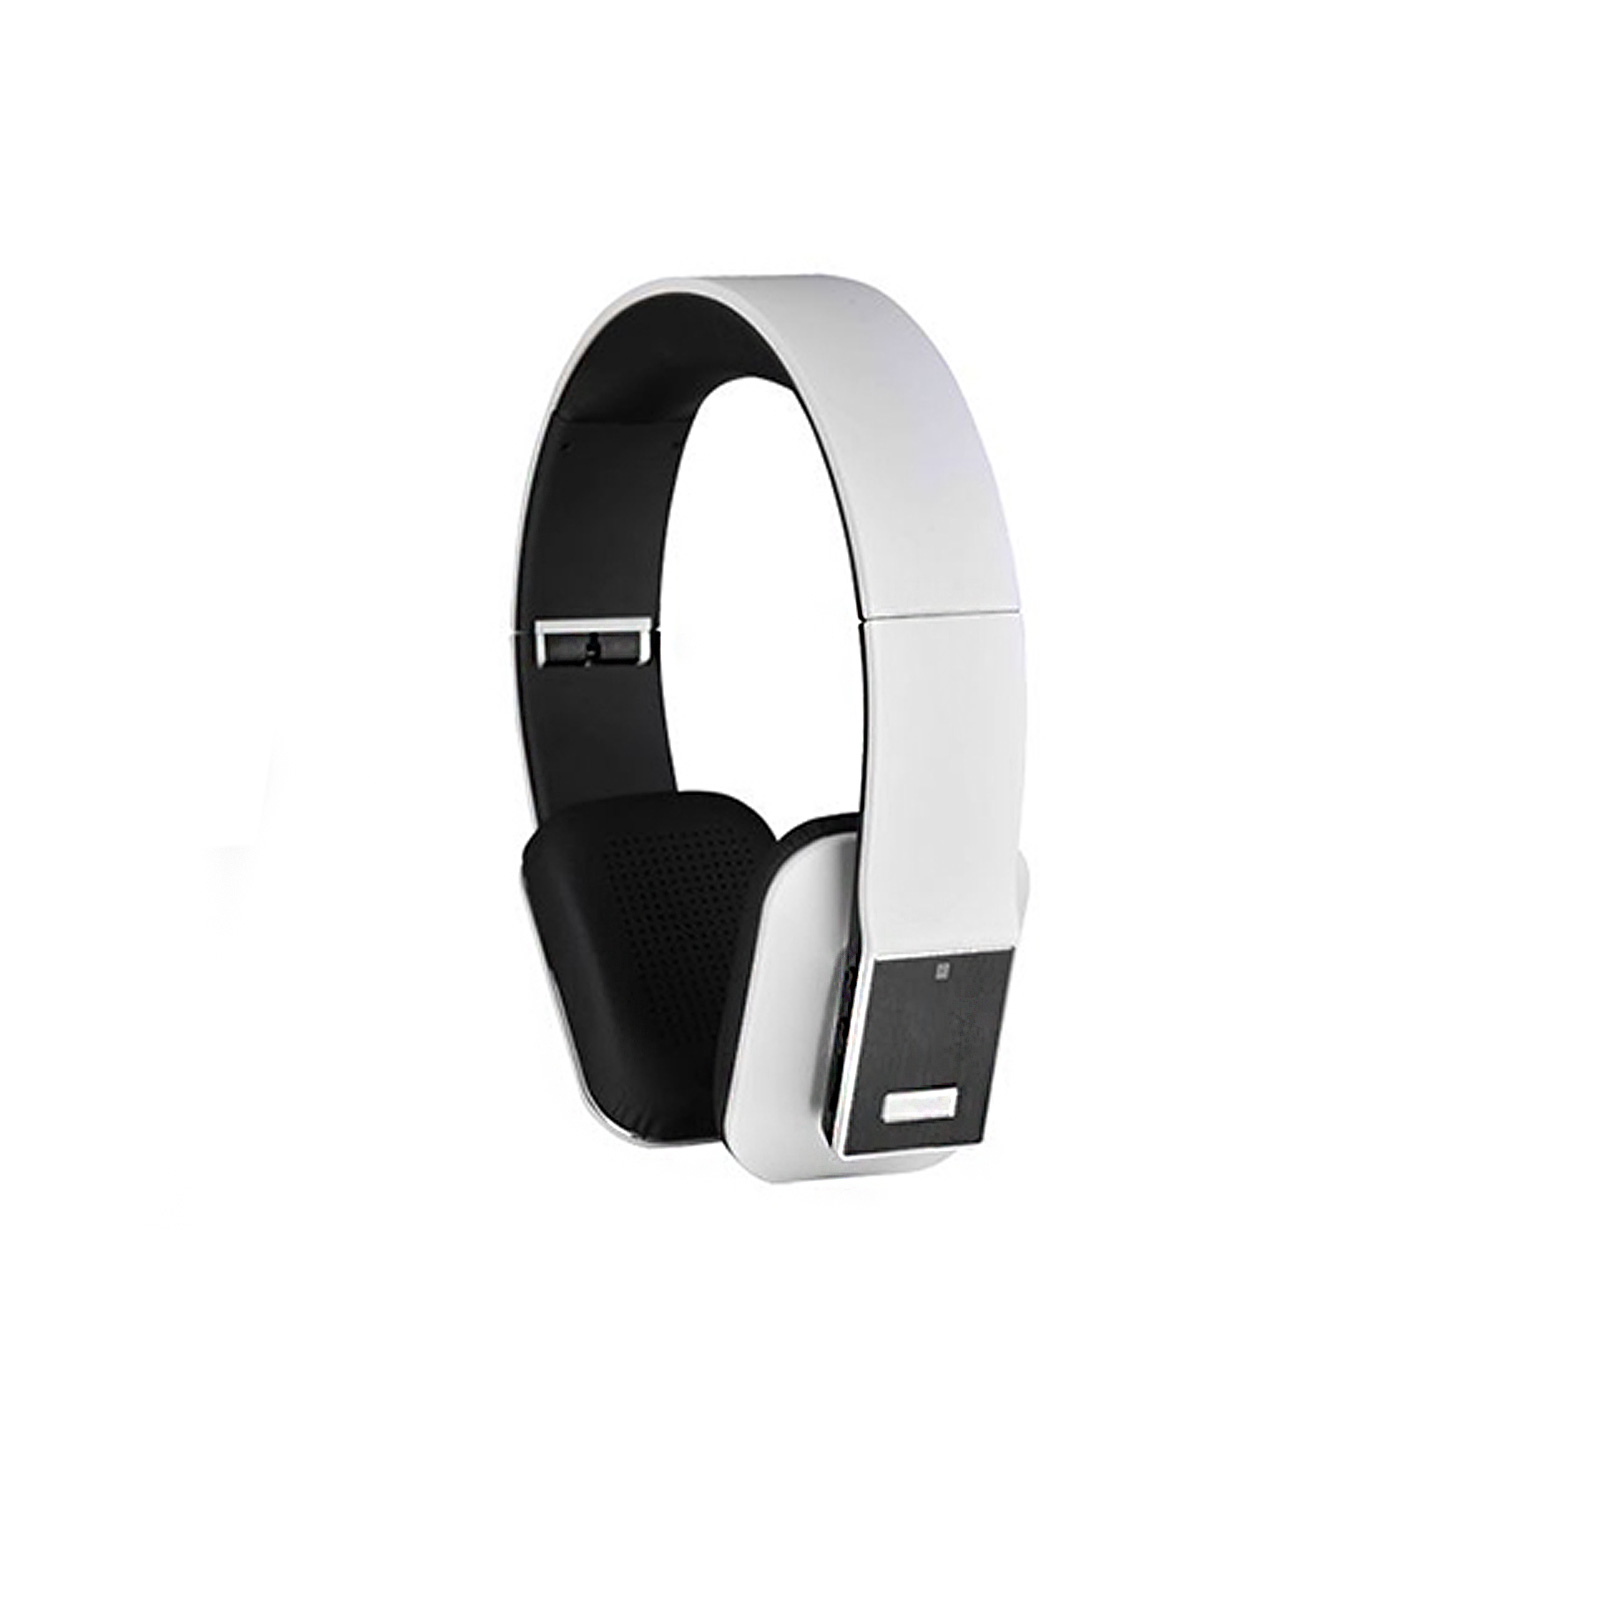 bth 002 bluetooth headset mit mikrofon telefonieren musik. Black Bedroom Furniture Sets. Home Design Ideas